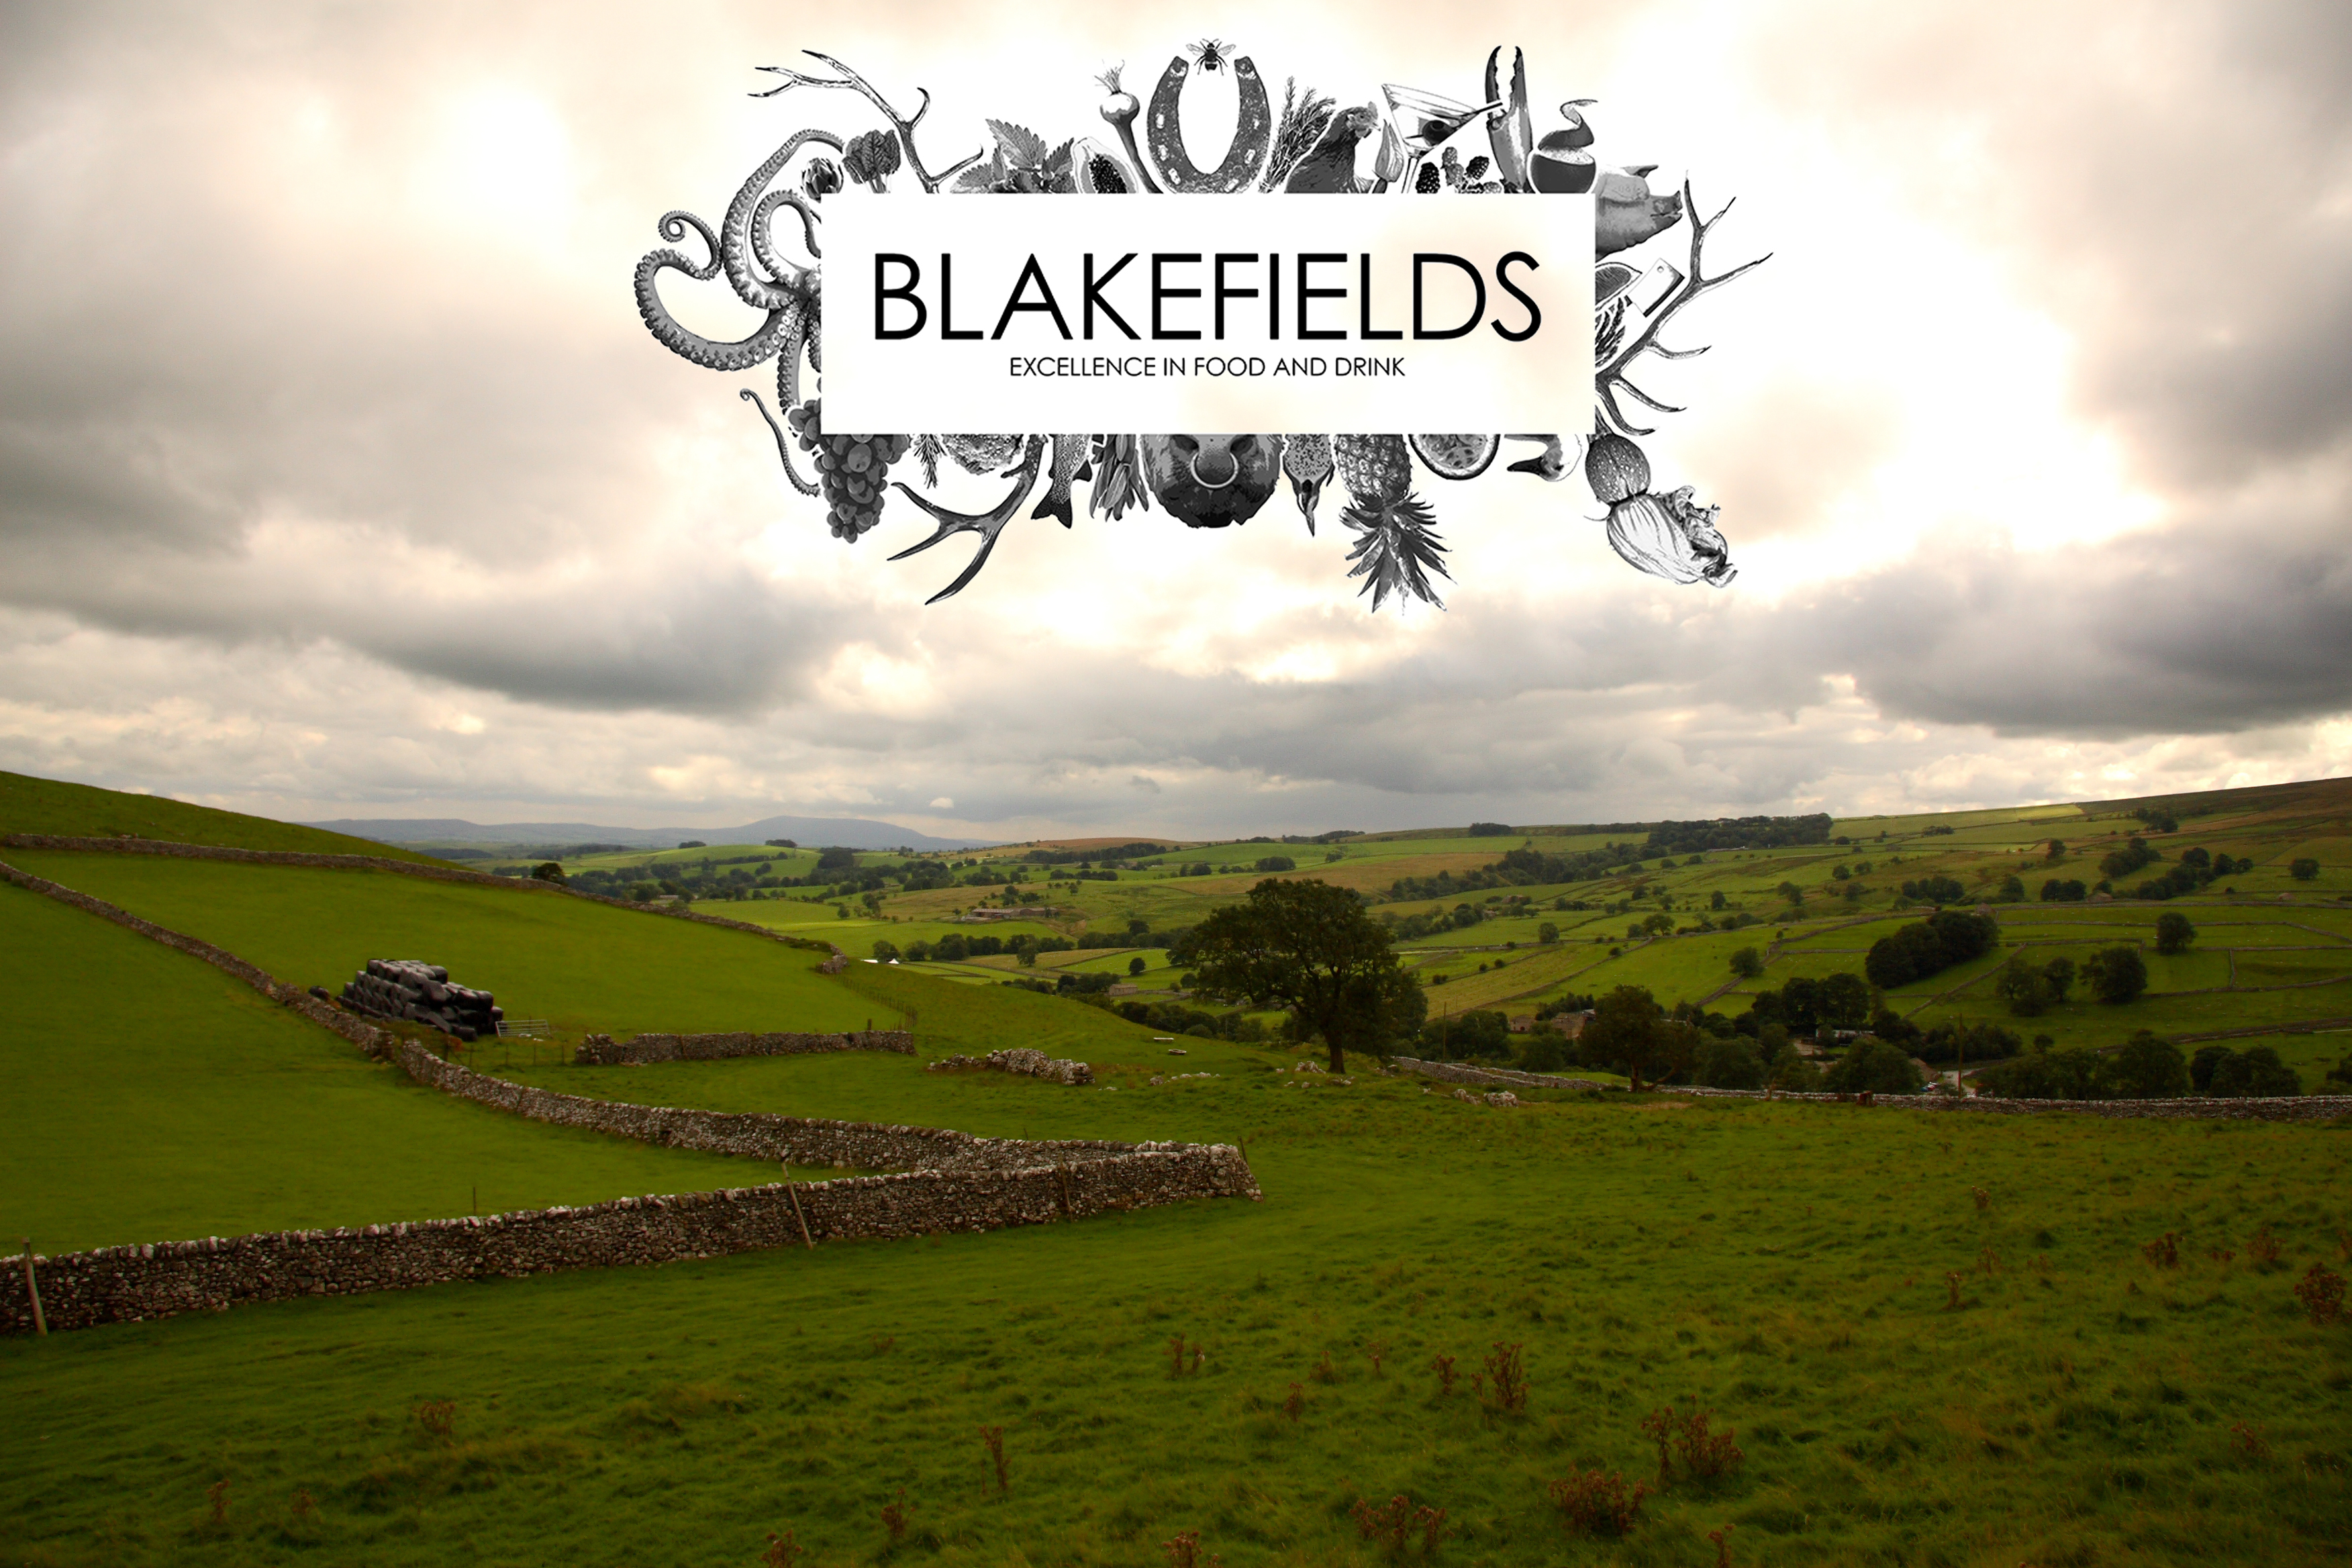 Blakefields About Us page Yorkshire dales